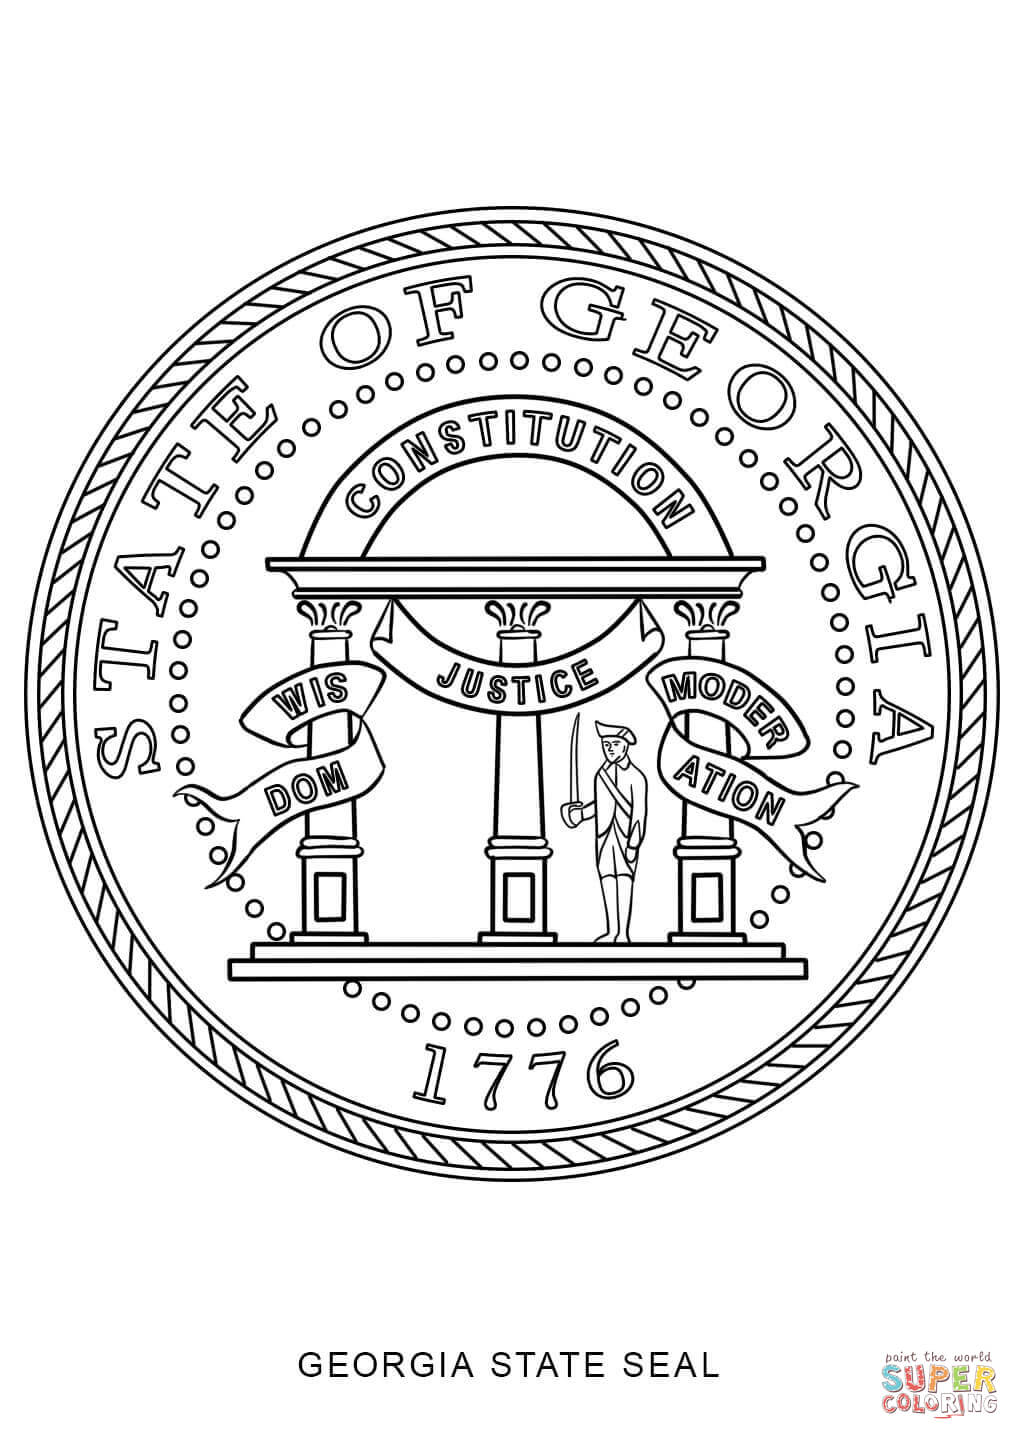 new jersey state seal coloring page georgia state seal coloring page free printable coloring new state coloring jersey seal page